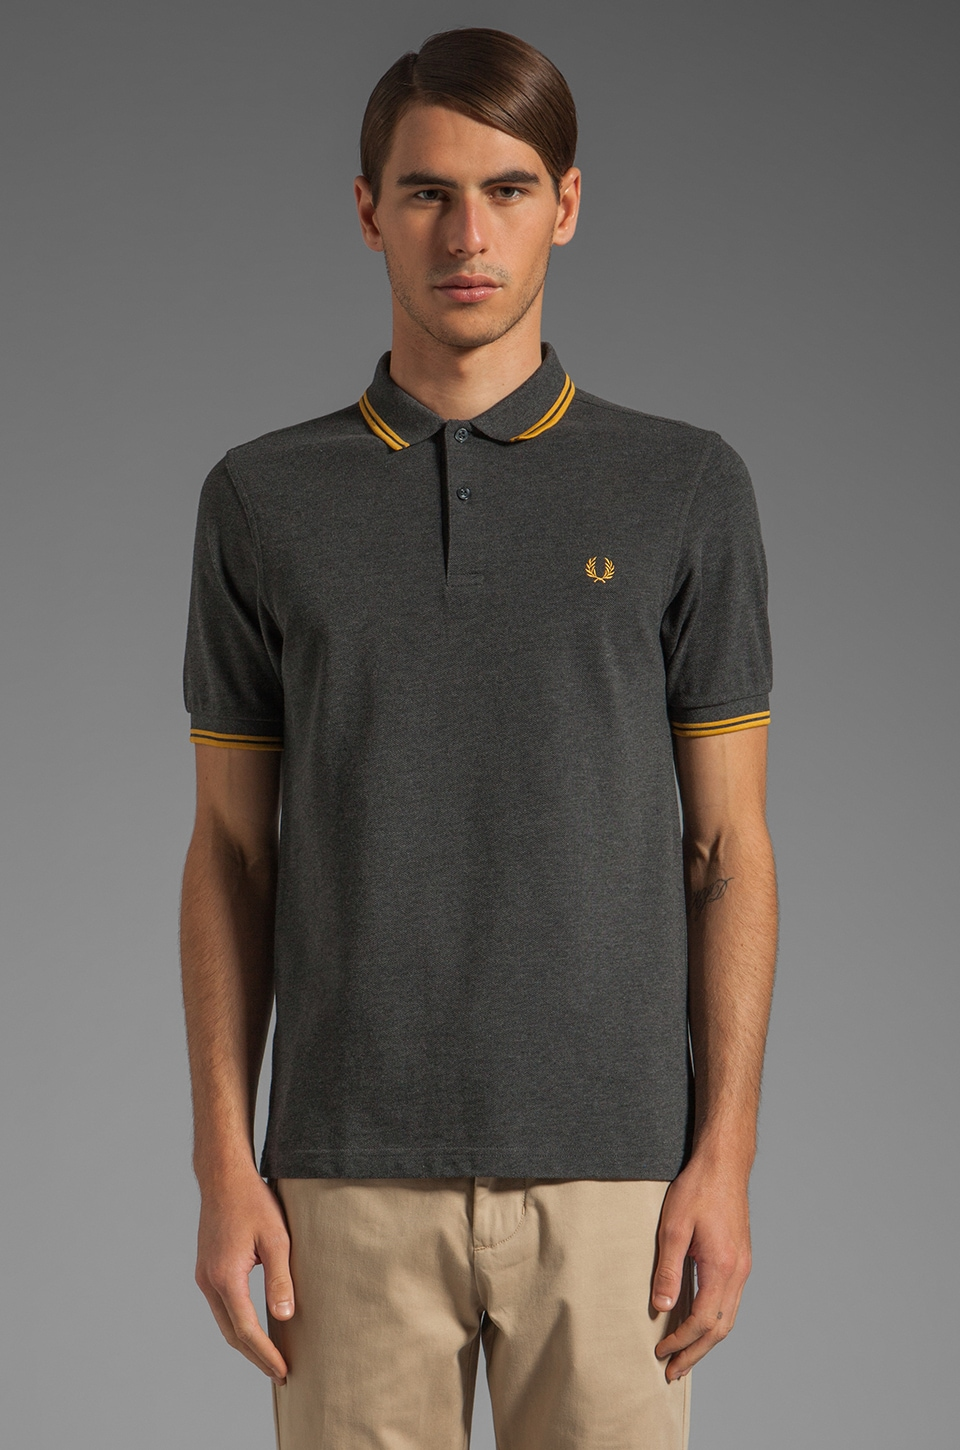 Fred Perry Twin Tipped Fred Perry Shirt in Graphite Marl/Mustard Yellow/Mustard Yellow